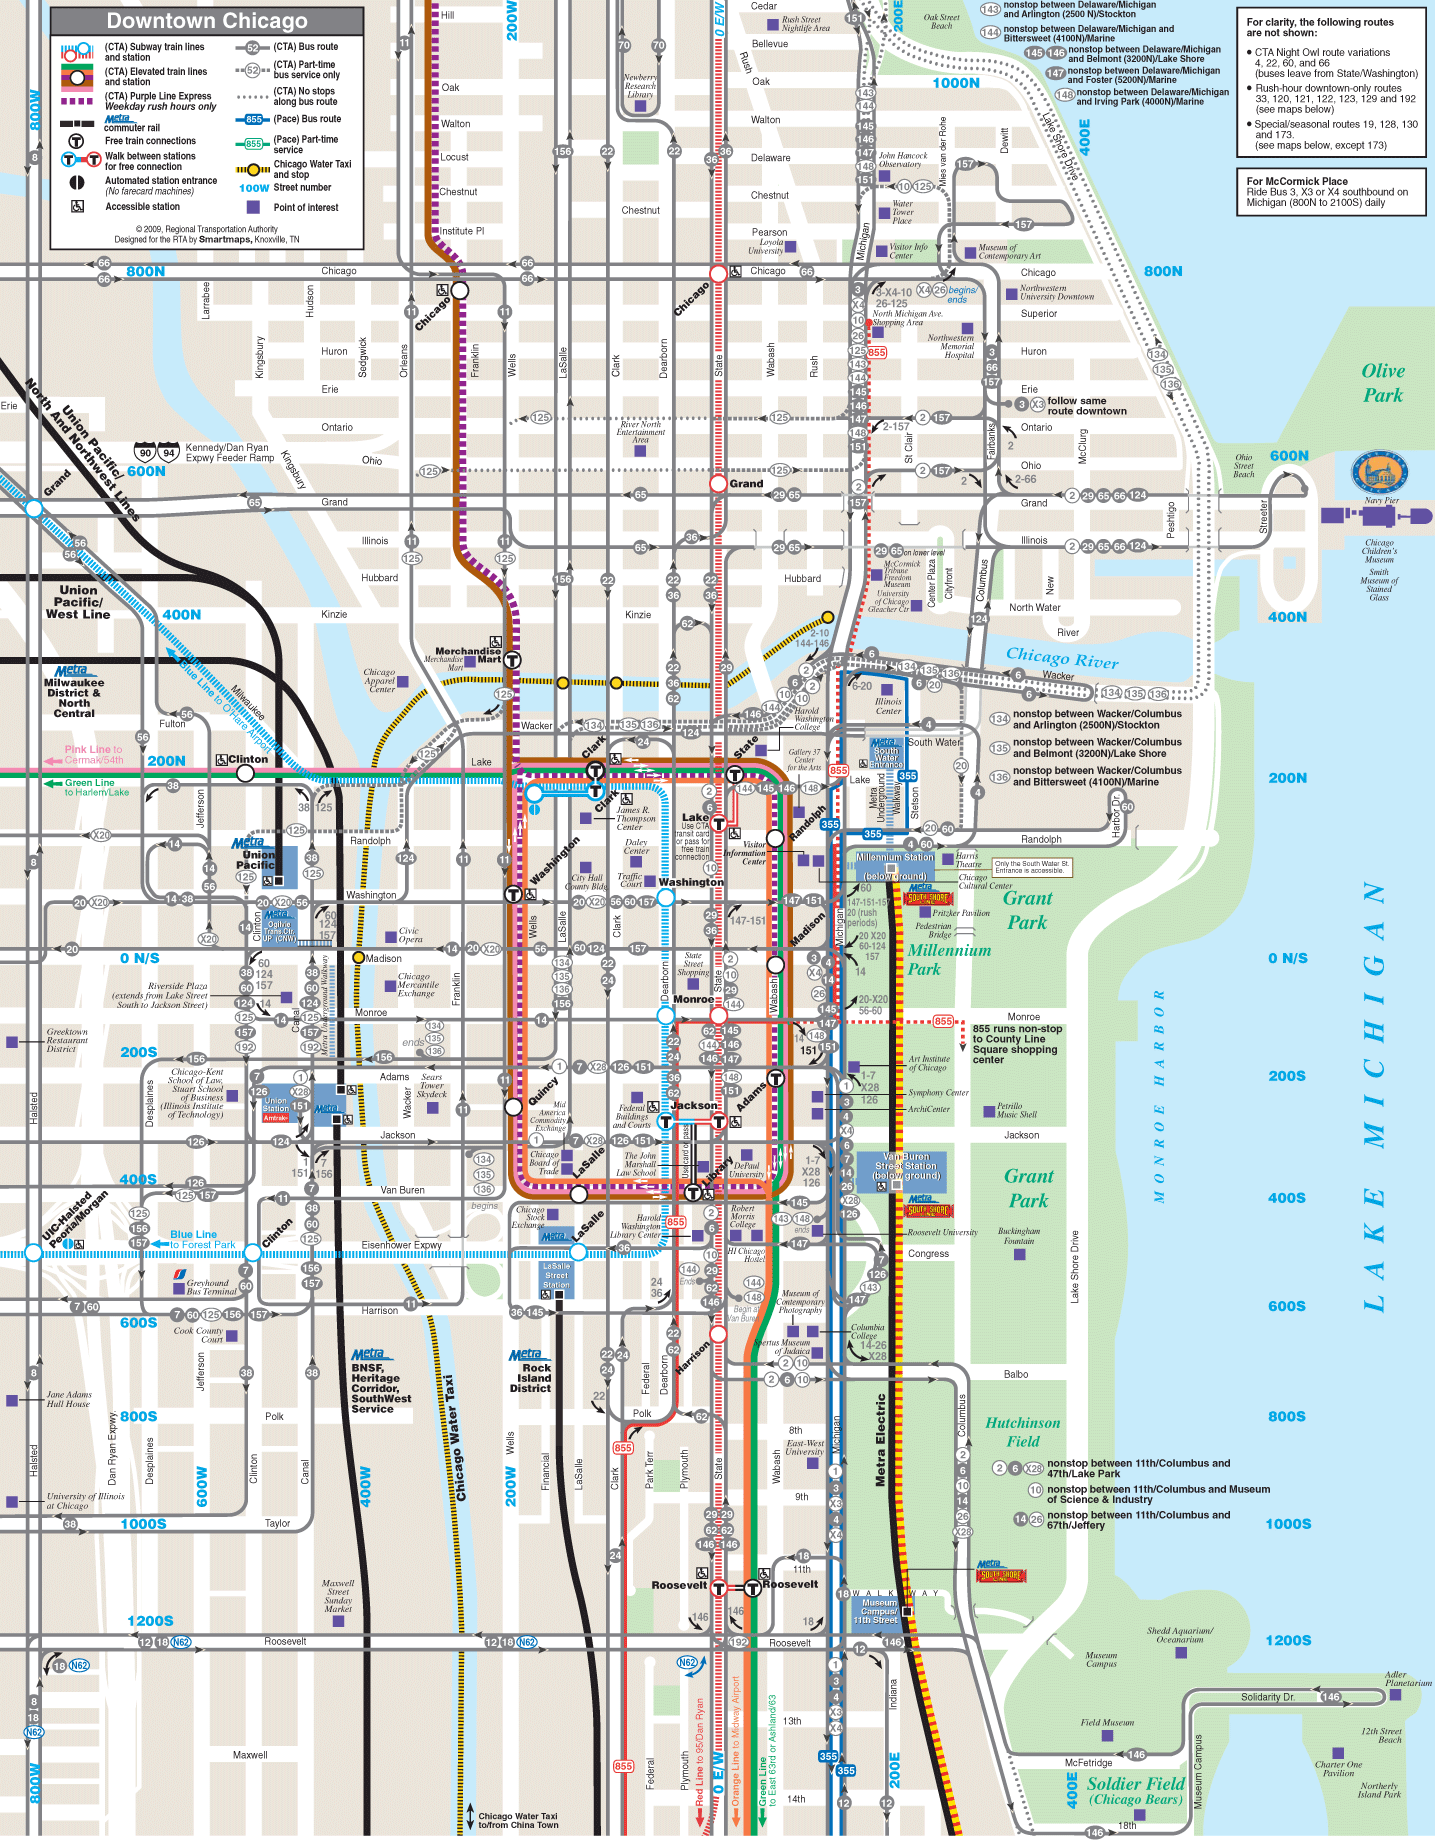 Chicago Downtown Transport Map • Mapsof.net